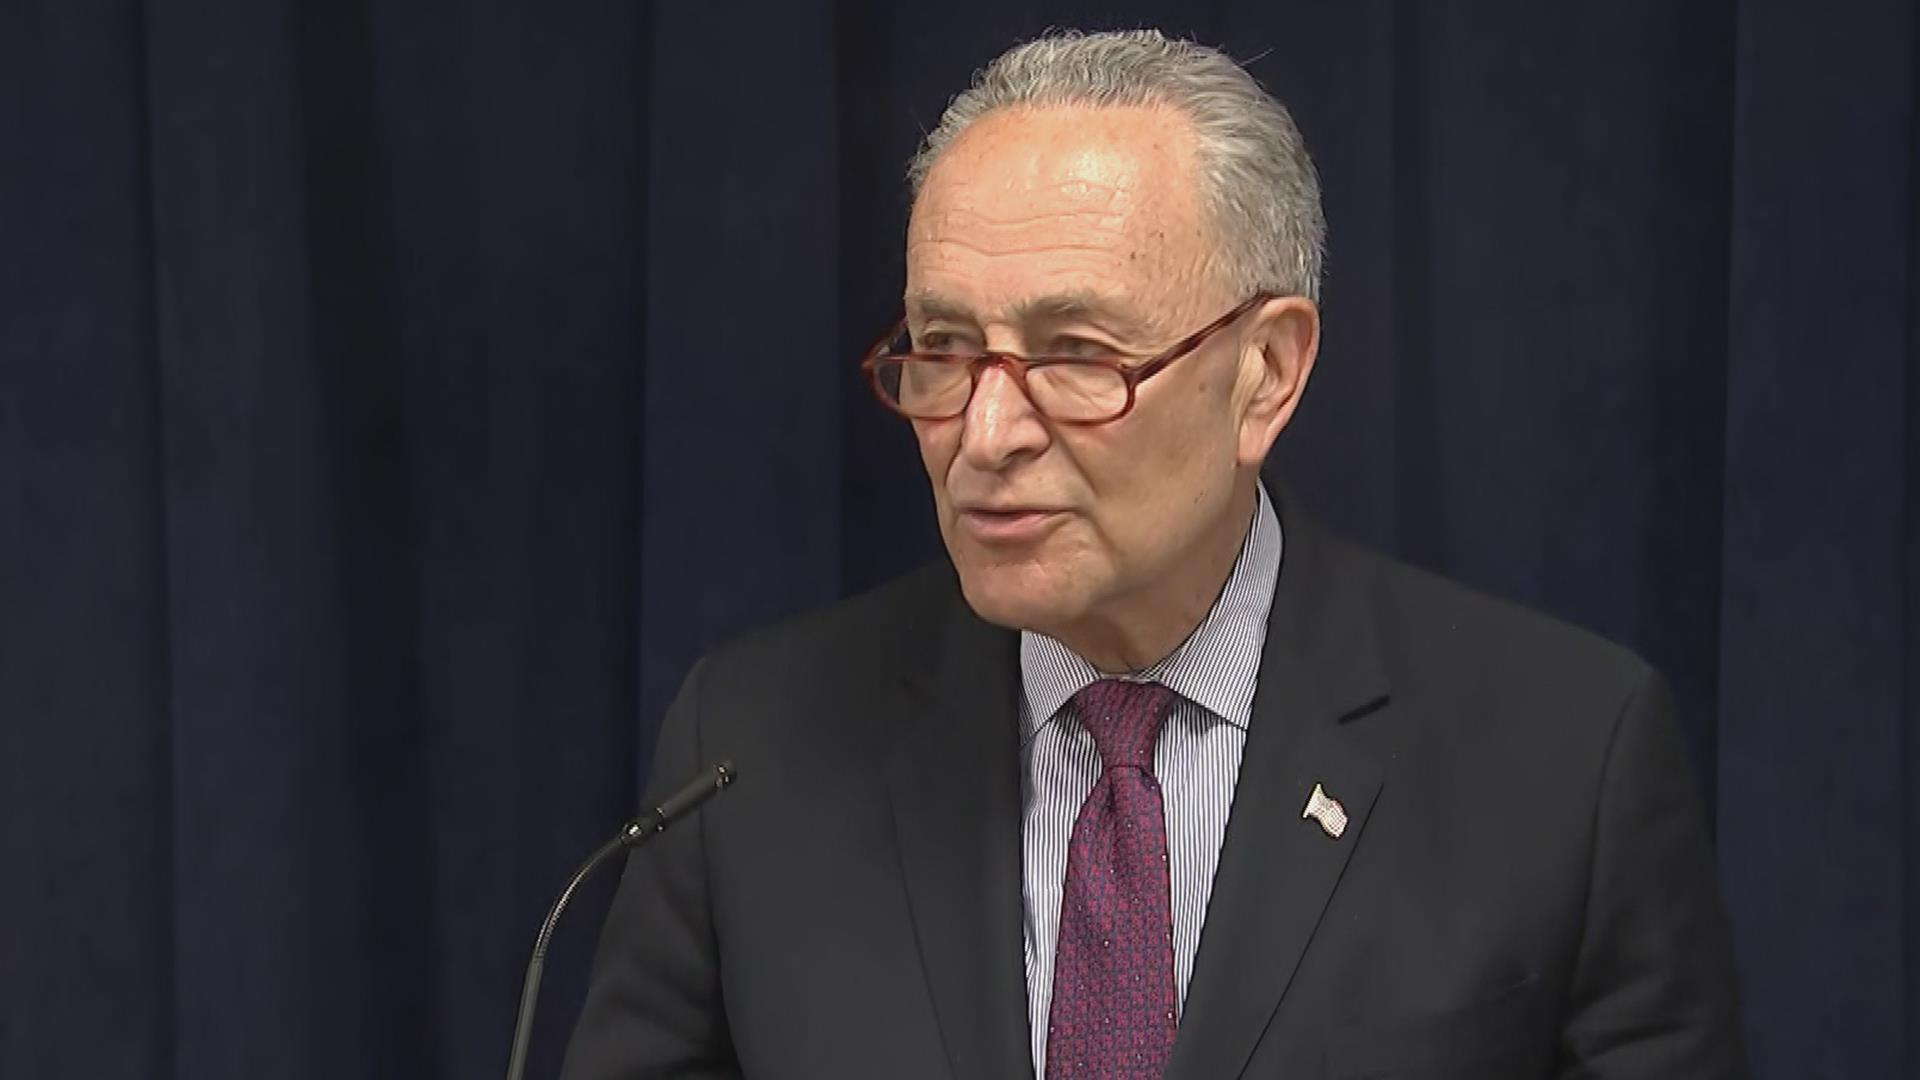 Sen. Schumer reacts to Mueller report submission to Barr